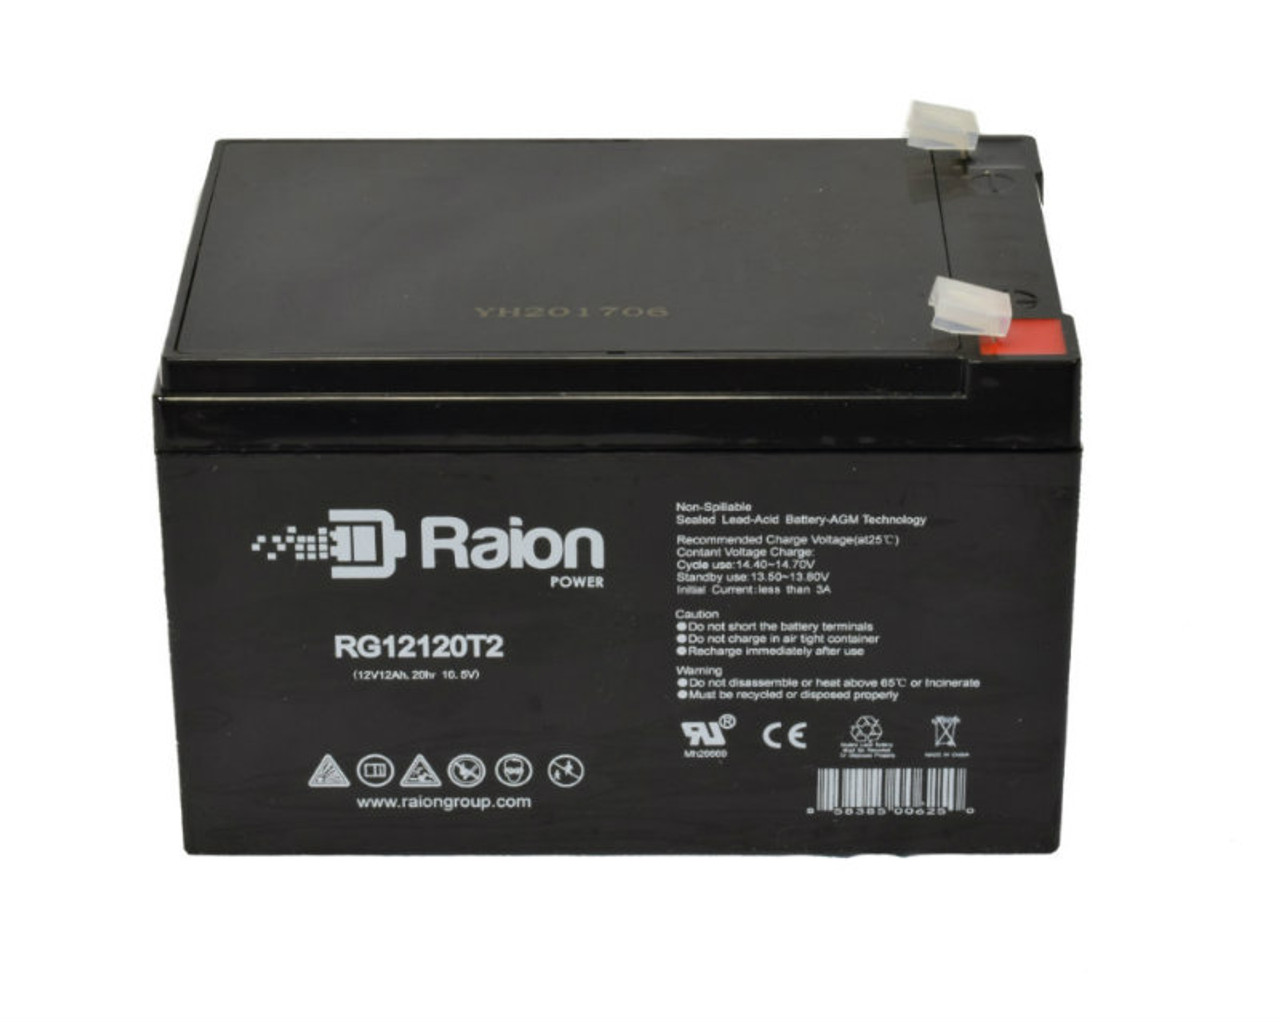 Raion Power RG12120T2 SLA Battery for Electric Mobility Ultralite 355 Wheelchairs